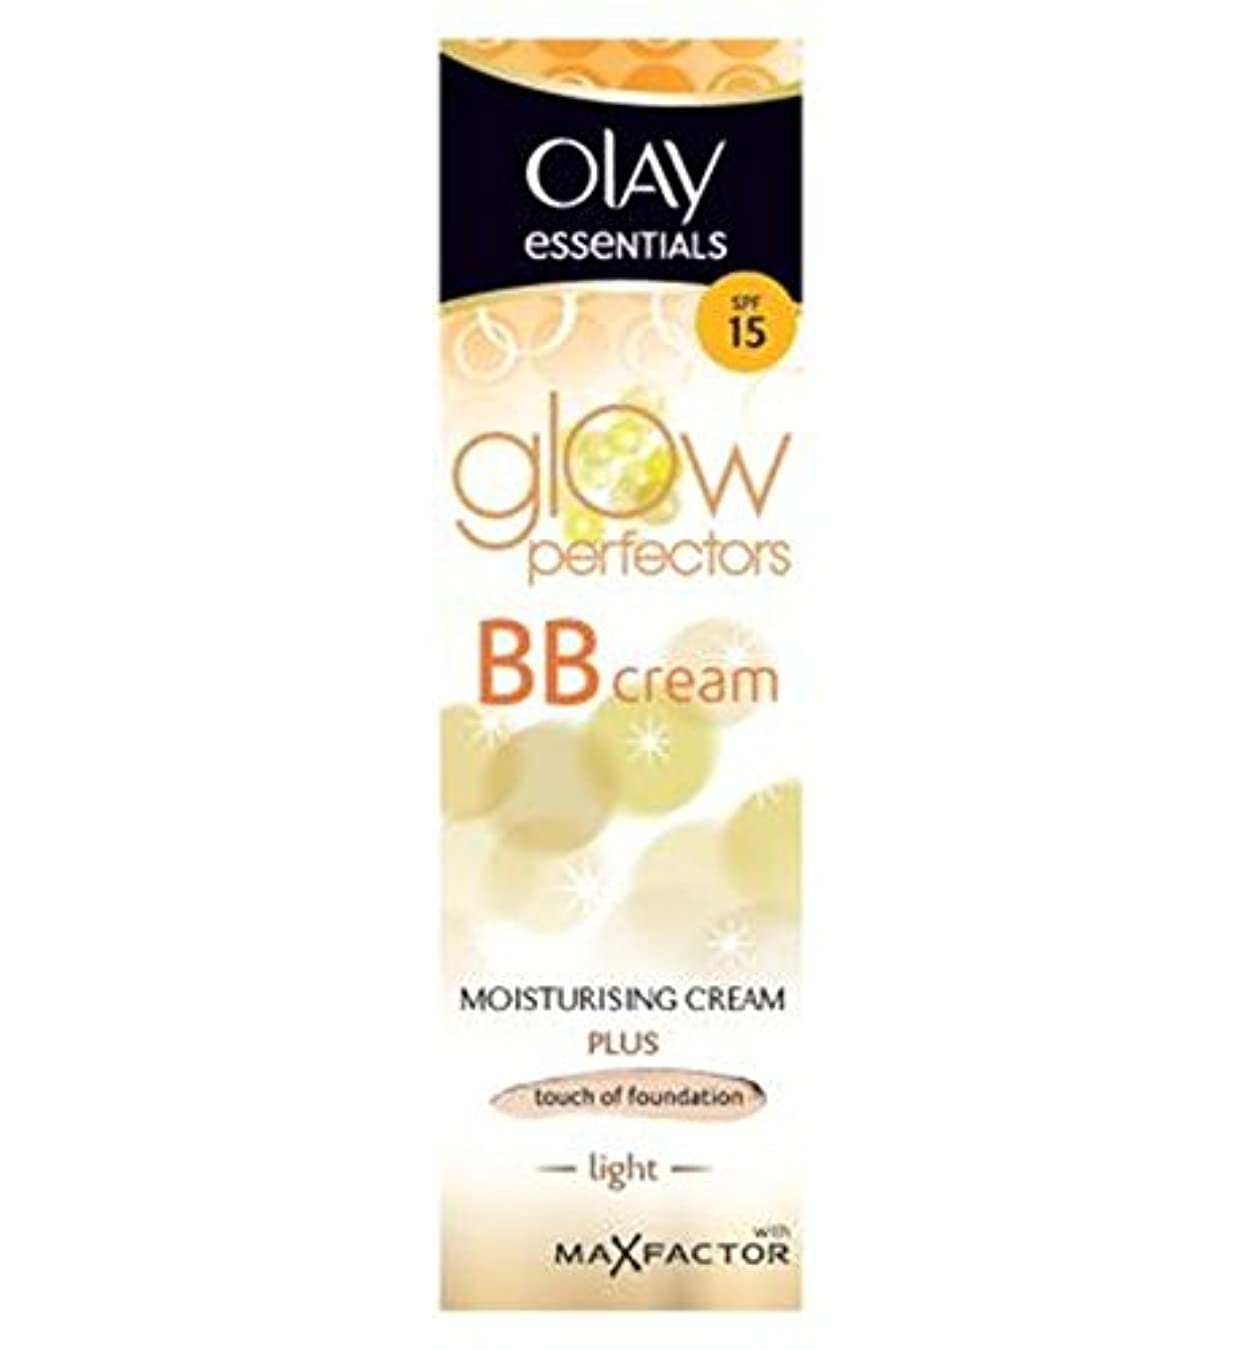 Olay Complete BB Cream SPF15 Skin Perfecting Tinted Moisturiser 50ml - Fair - 着色保湿50ミリリットルを完成オーレイ完全なBbクリームSpf15...